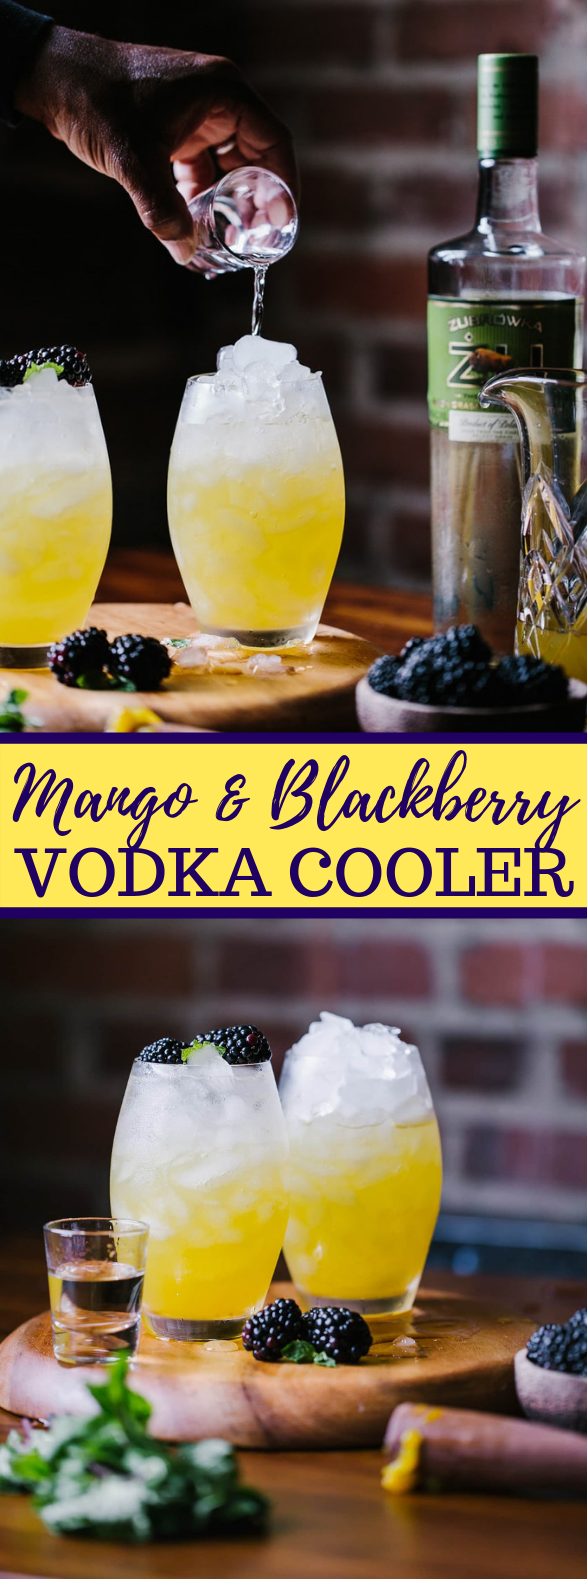 MANGO AND BLACKBERRY VODKA COOLER #drink #cocktail